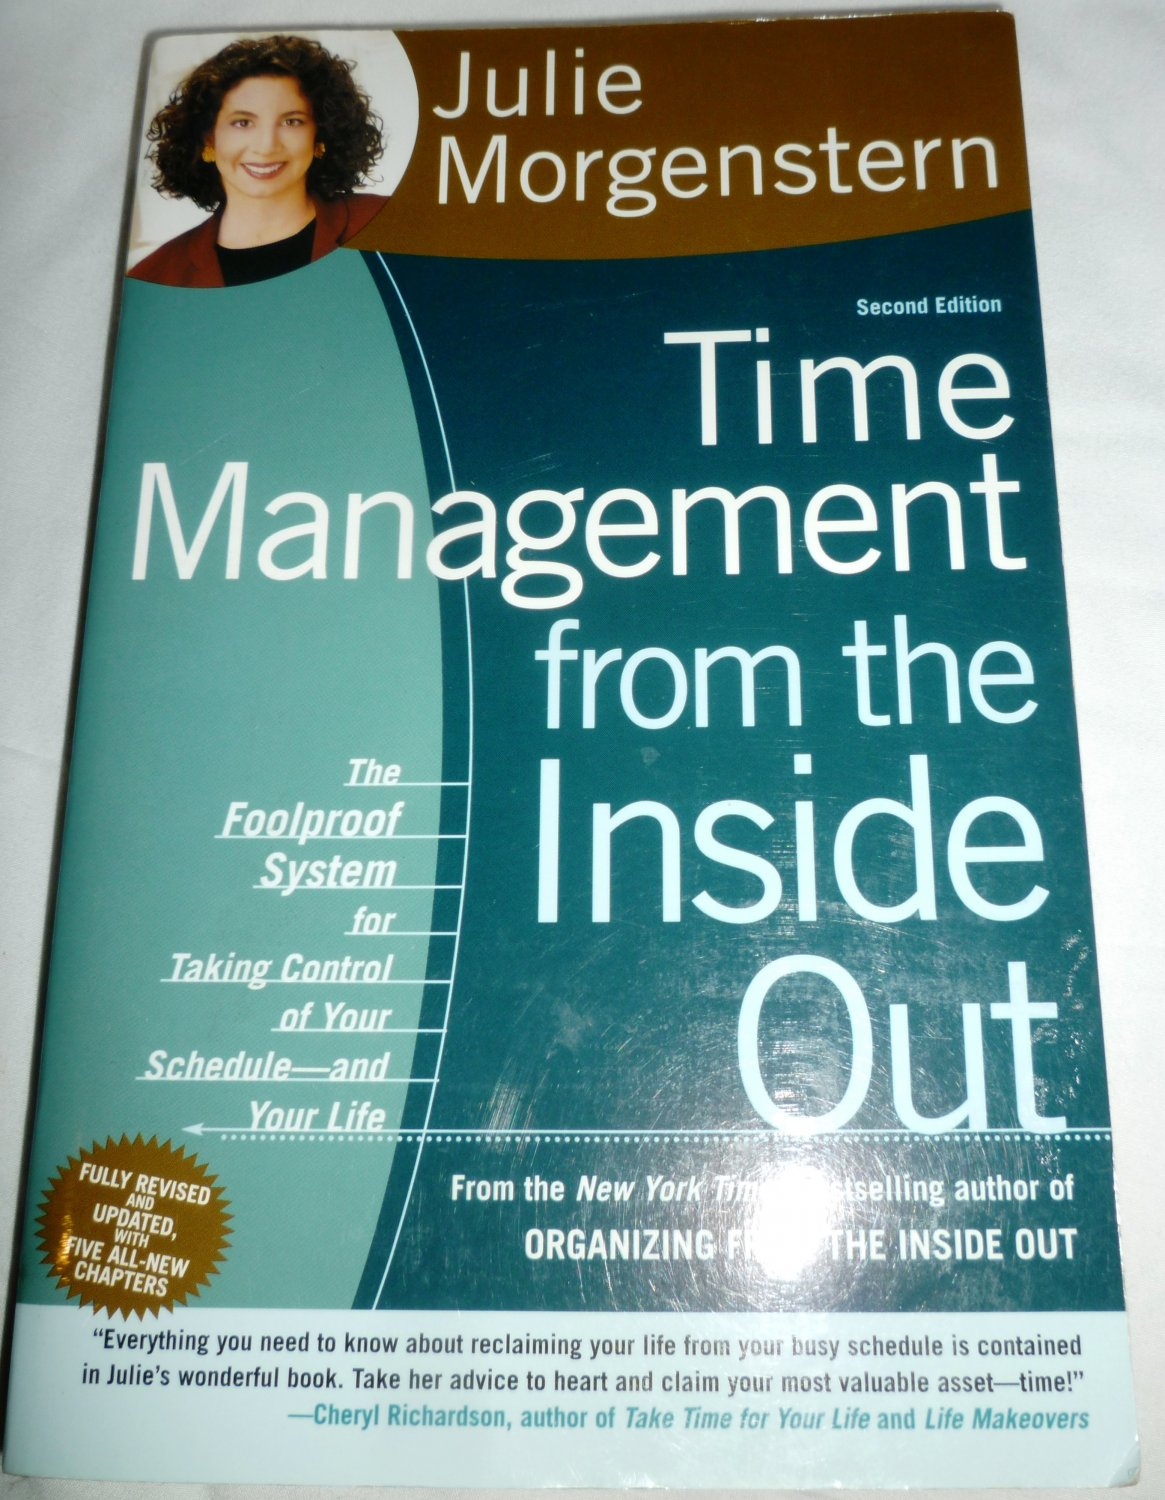 TIME MANAGEMENT FROM THE INSIDE OUT BY JULIA MORGENSTERN